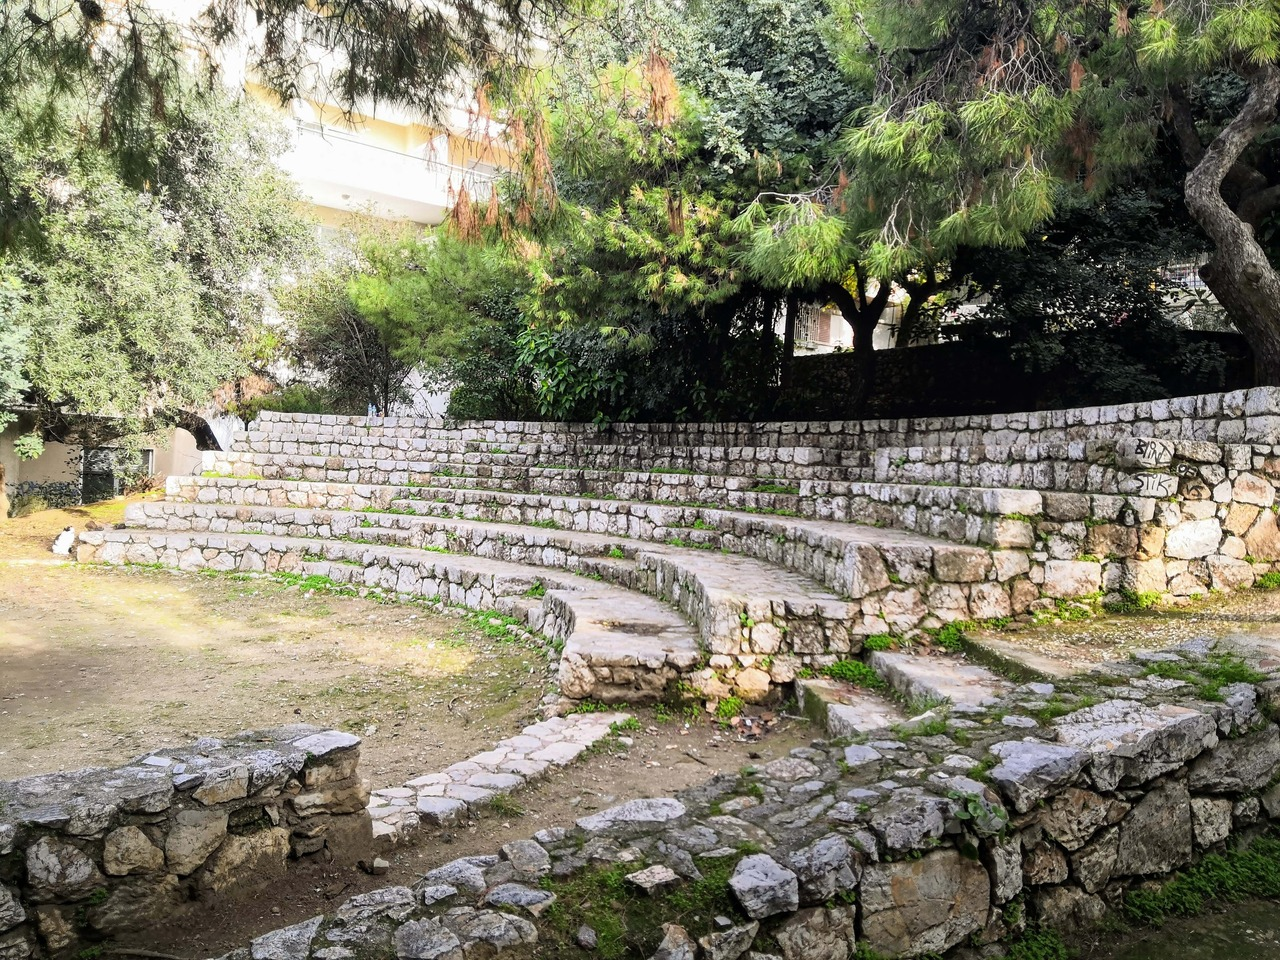 Small stone theater inside a park